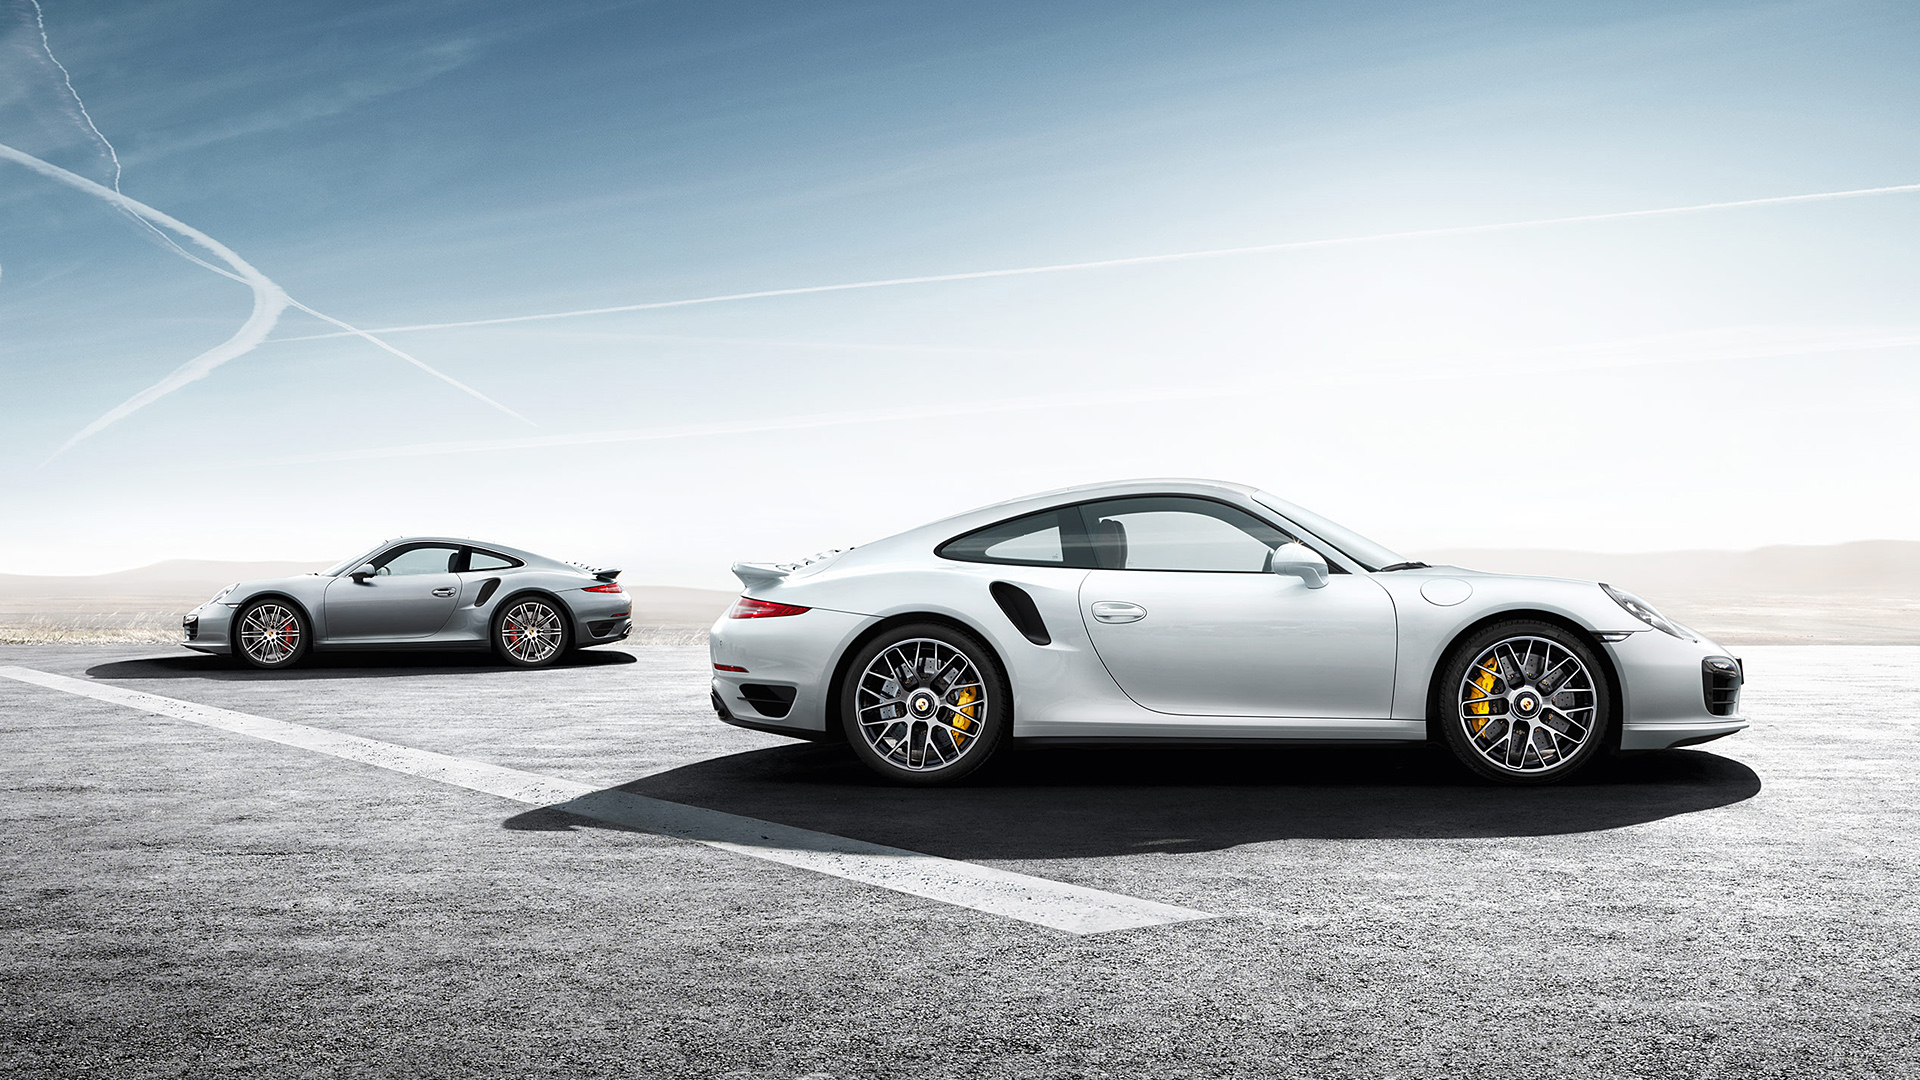 911 Turbo Wallpapers Top Free 911 Turbo Backgrounds Wallpaperaccess